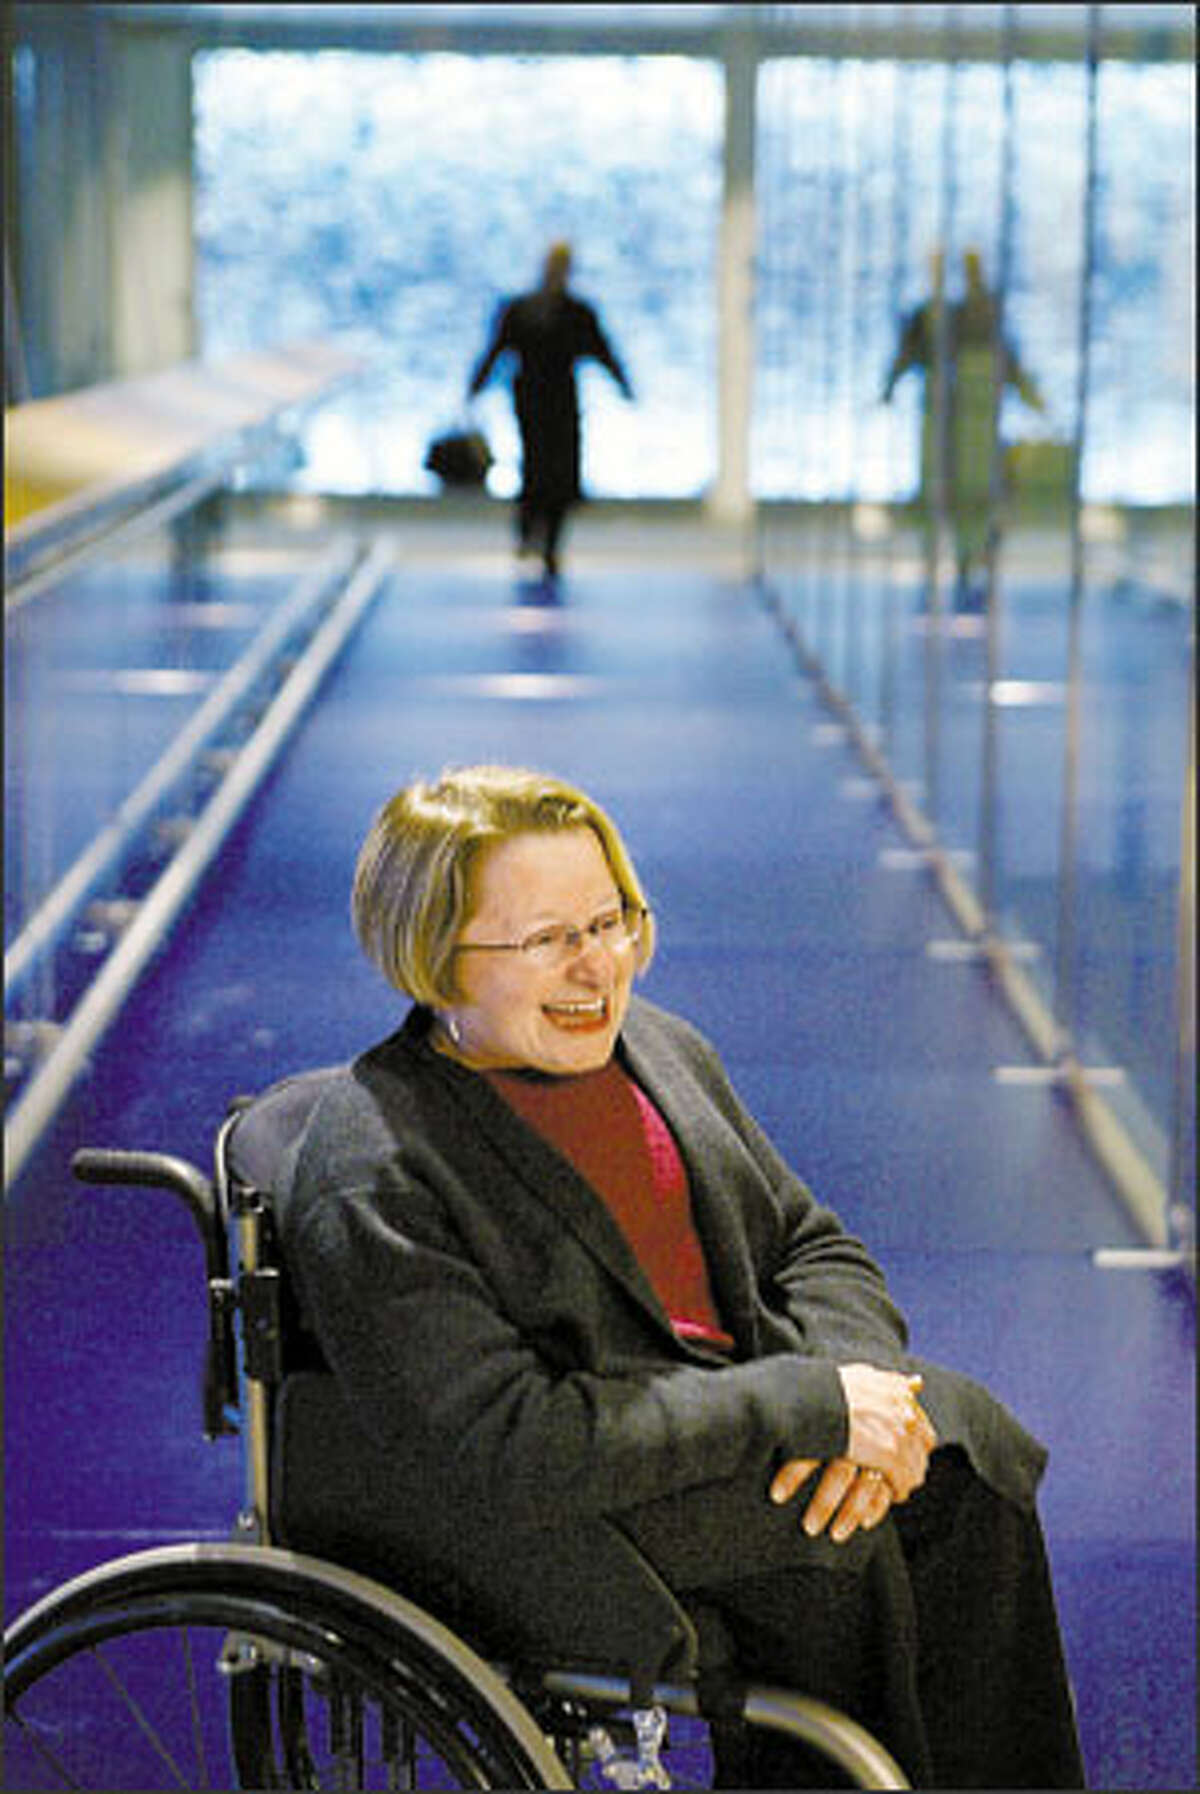 For this blue-glass bridge at the new Seattle City Hall, architect Karen Braitmayer pushed for a surface texture that wouldn't be too slippery for people using crutches or canes.